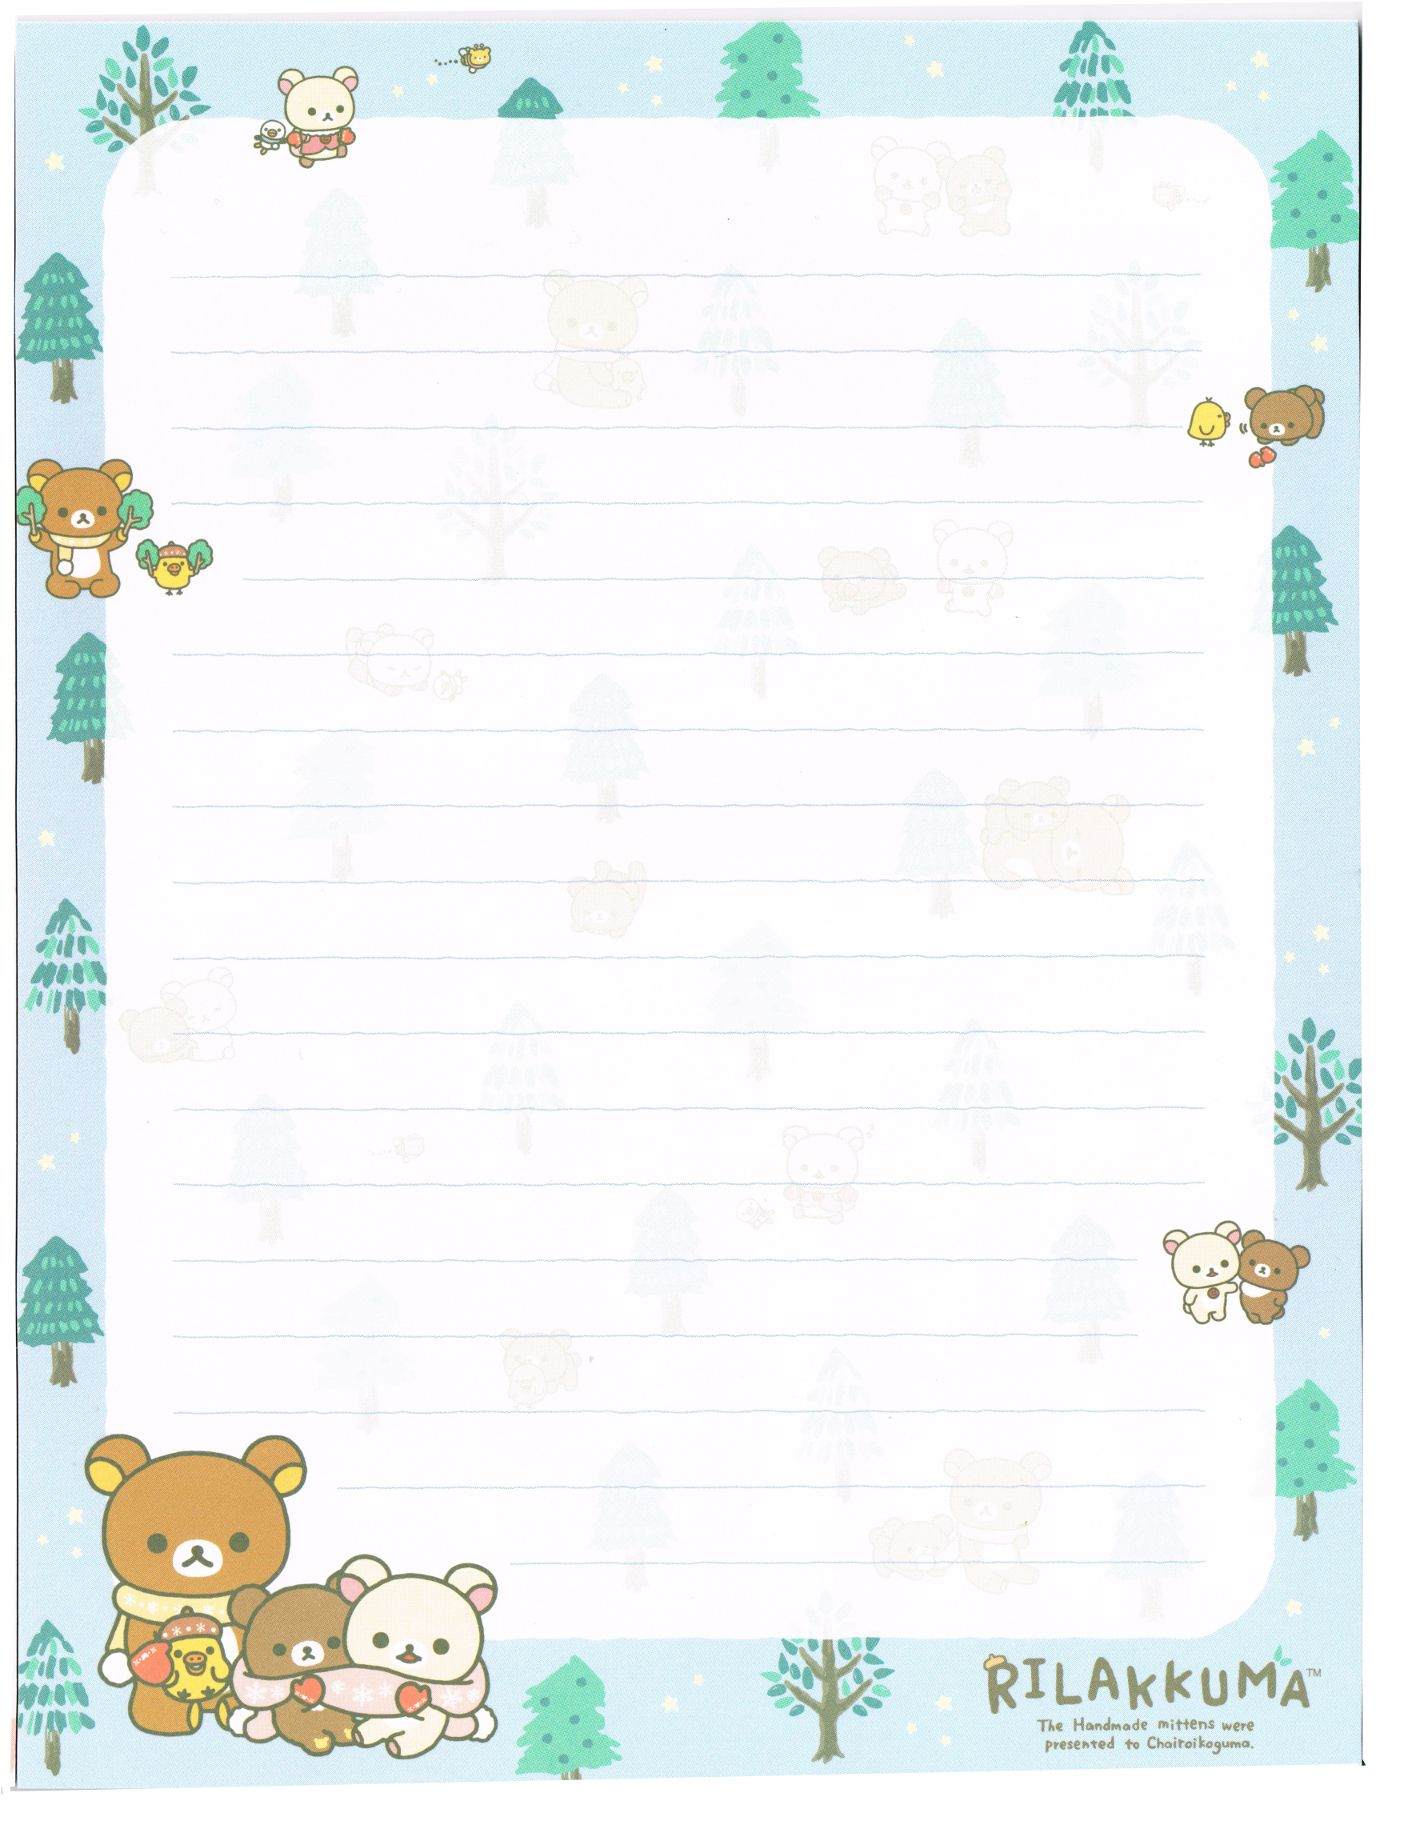 Free Printable Winter Nordic Forest Writing Memo Pad Sheet Rilakkuma - Free Printable Winter Stationery